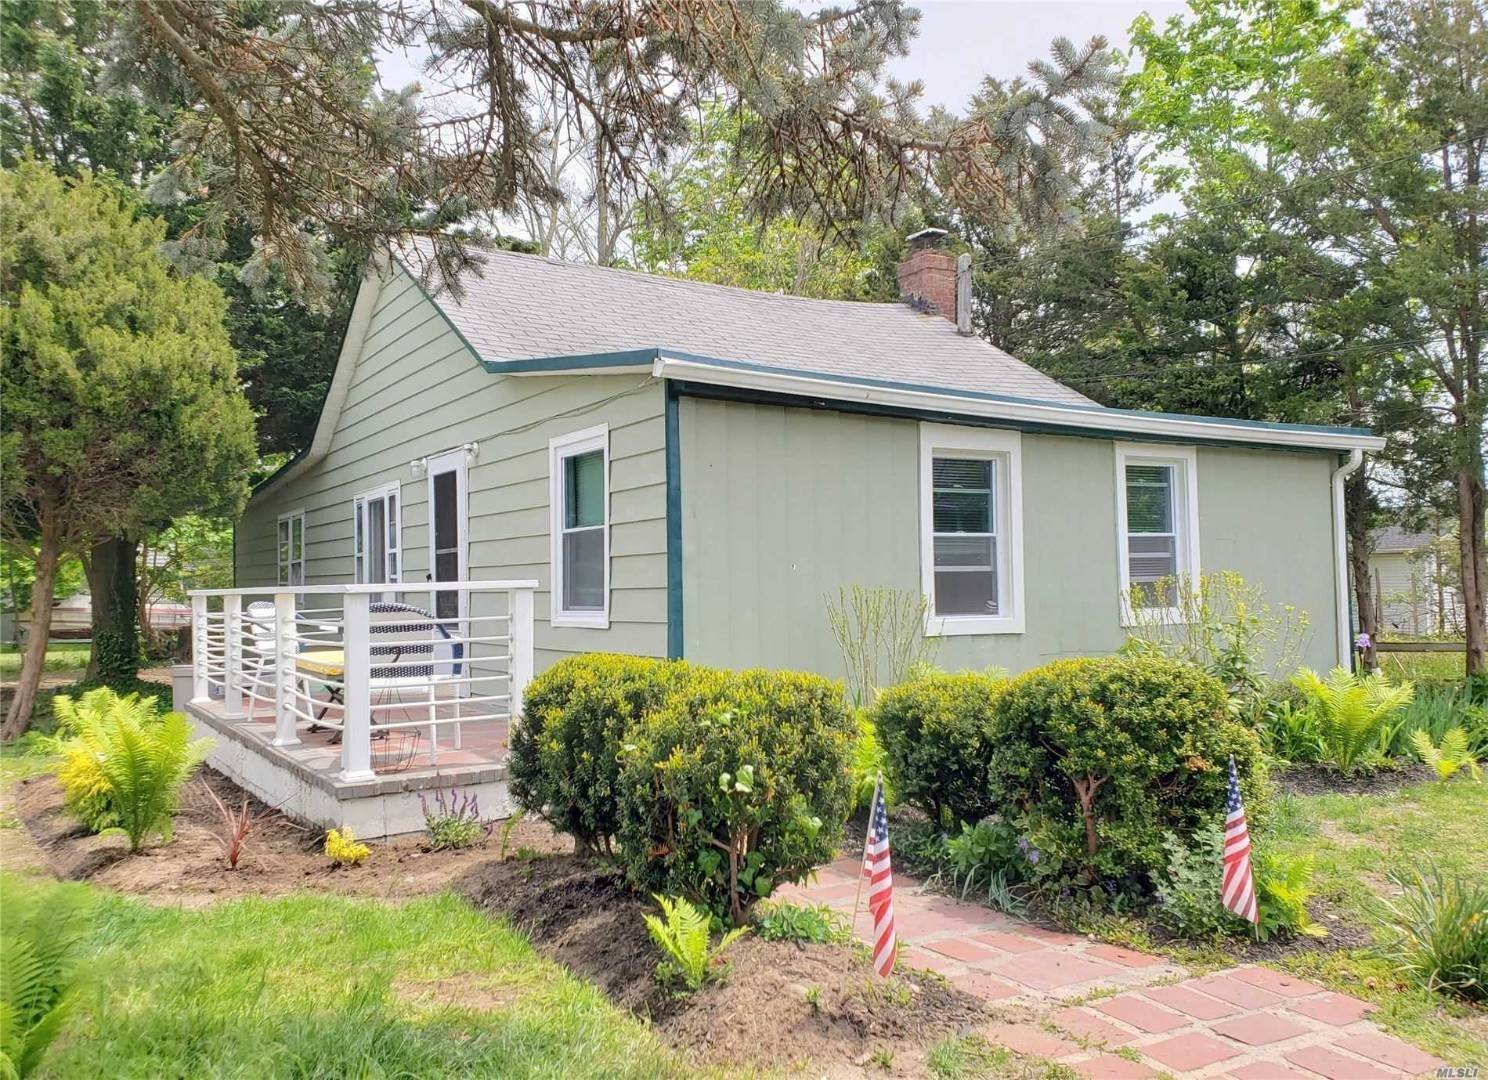 Single Family Home for Sale at Olde Time Beach Cottage 1365 Bay Ave, Mattituck, NY 11952